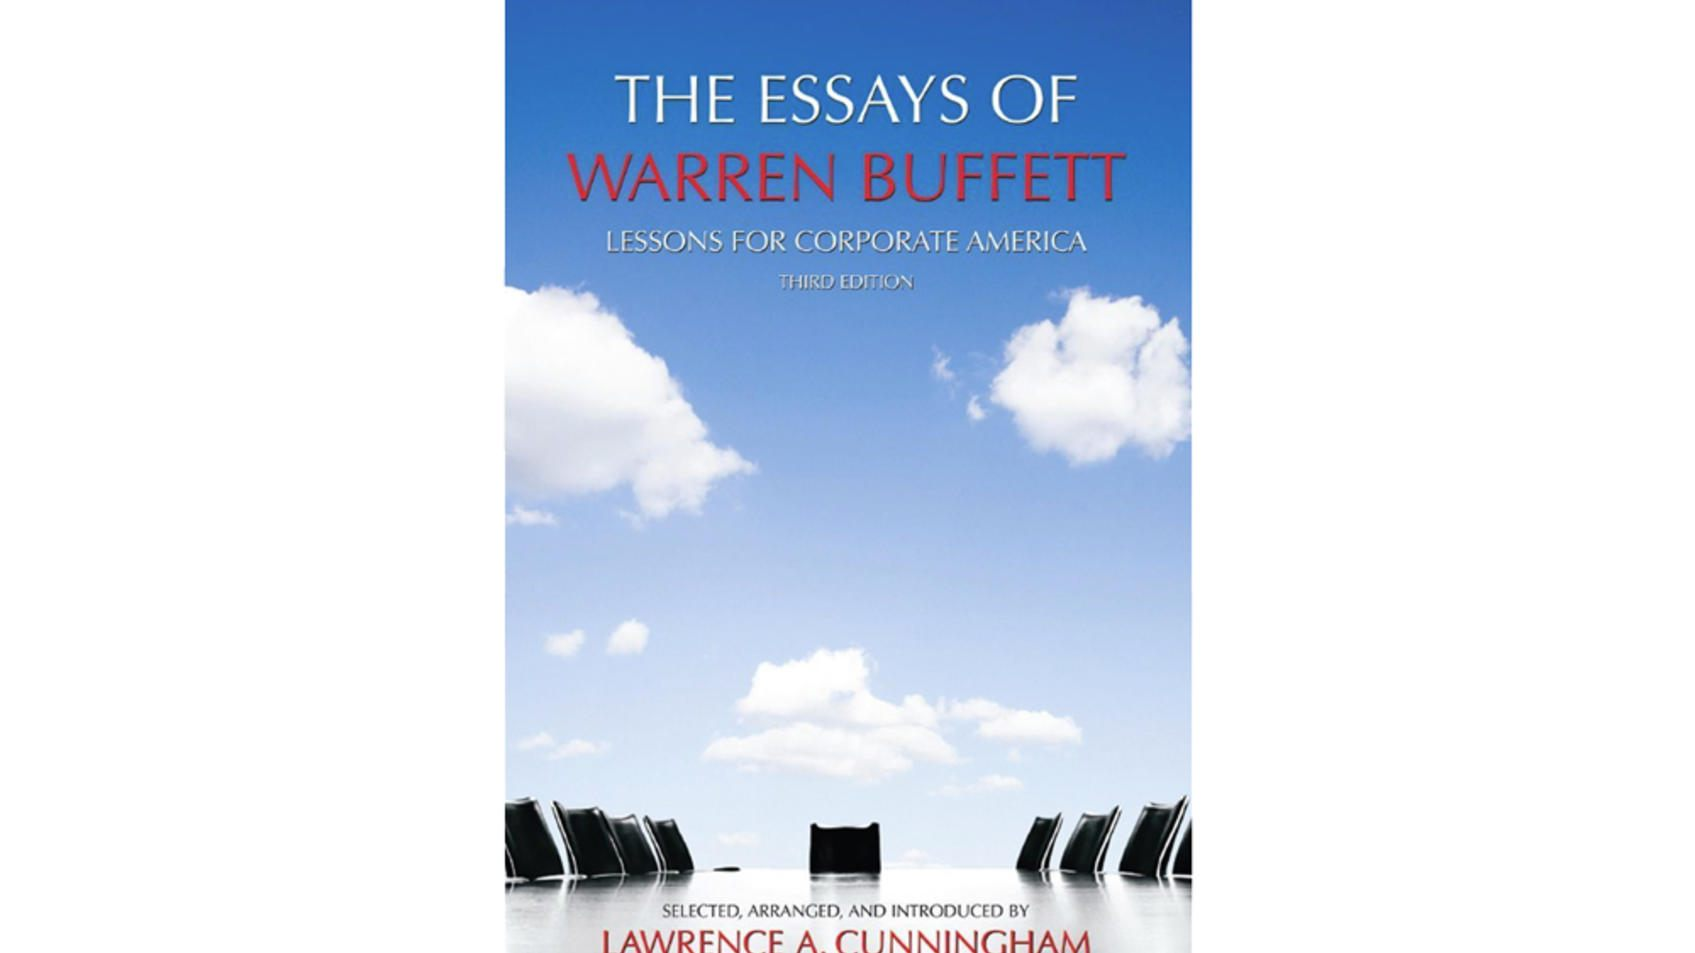 warren buffett essays amazon A list of the books that warren buffett recommends reading the most anyone who is familiar with how jeff bezos built amazon will tell you that this book is the cornerstone for building the culture of the company built to last shows how the company identity guides successful companies, but only for those who embrace.